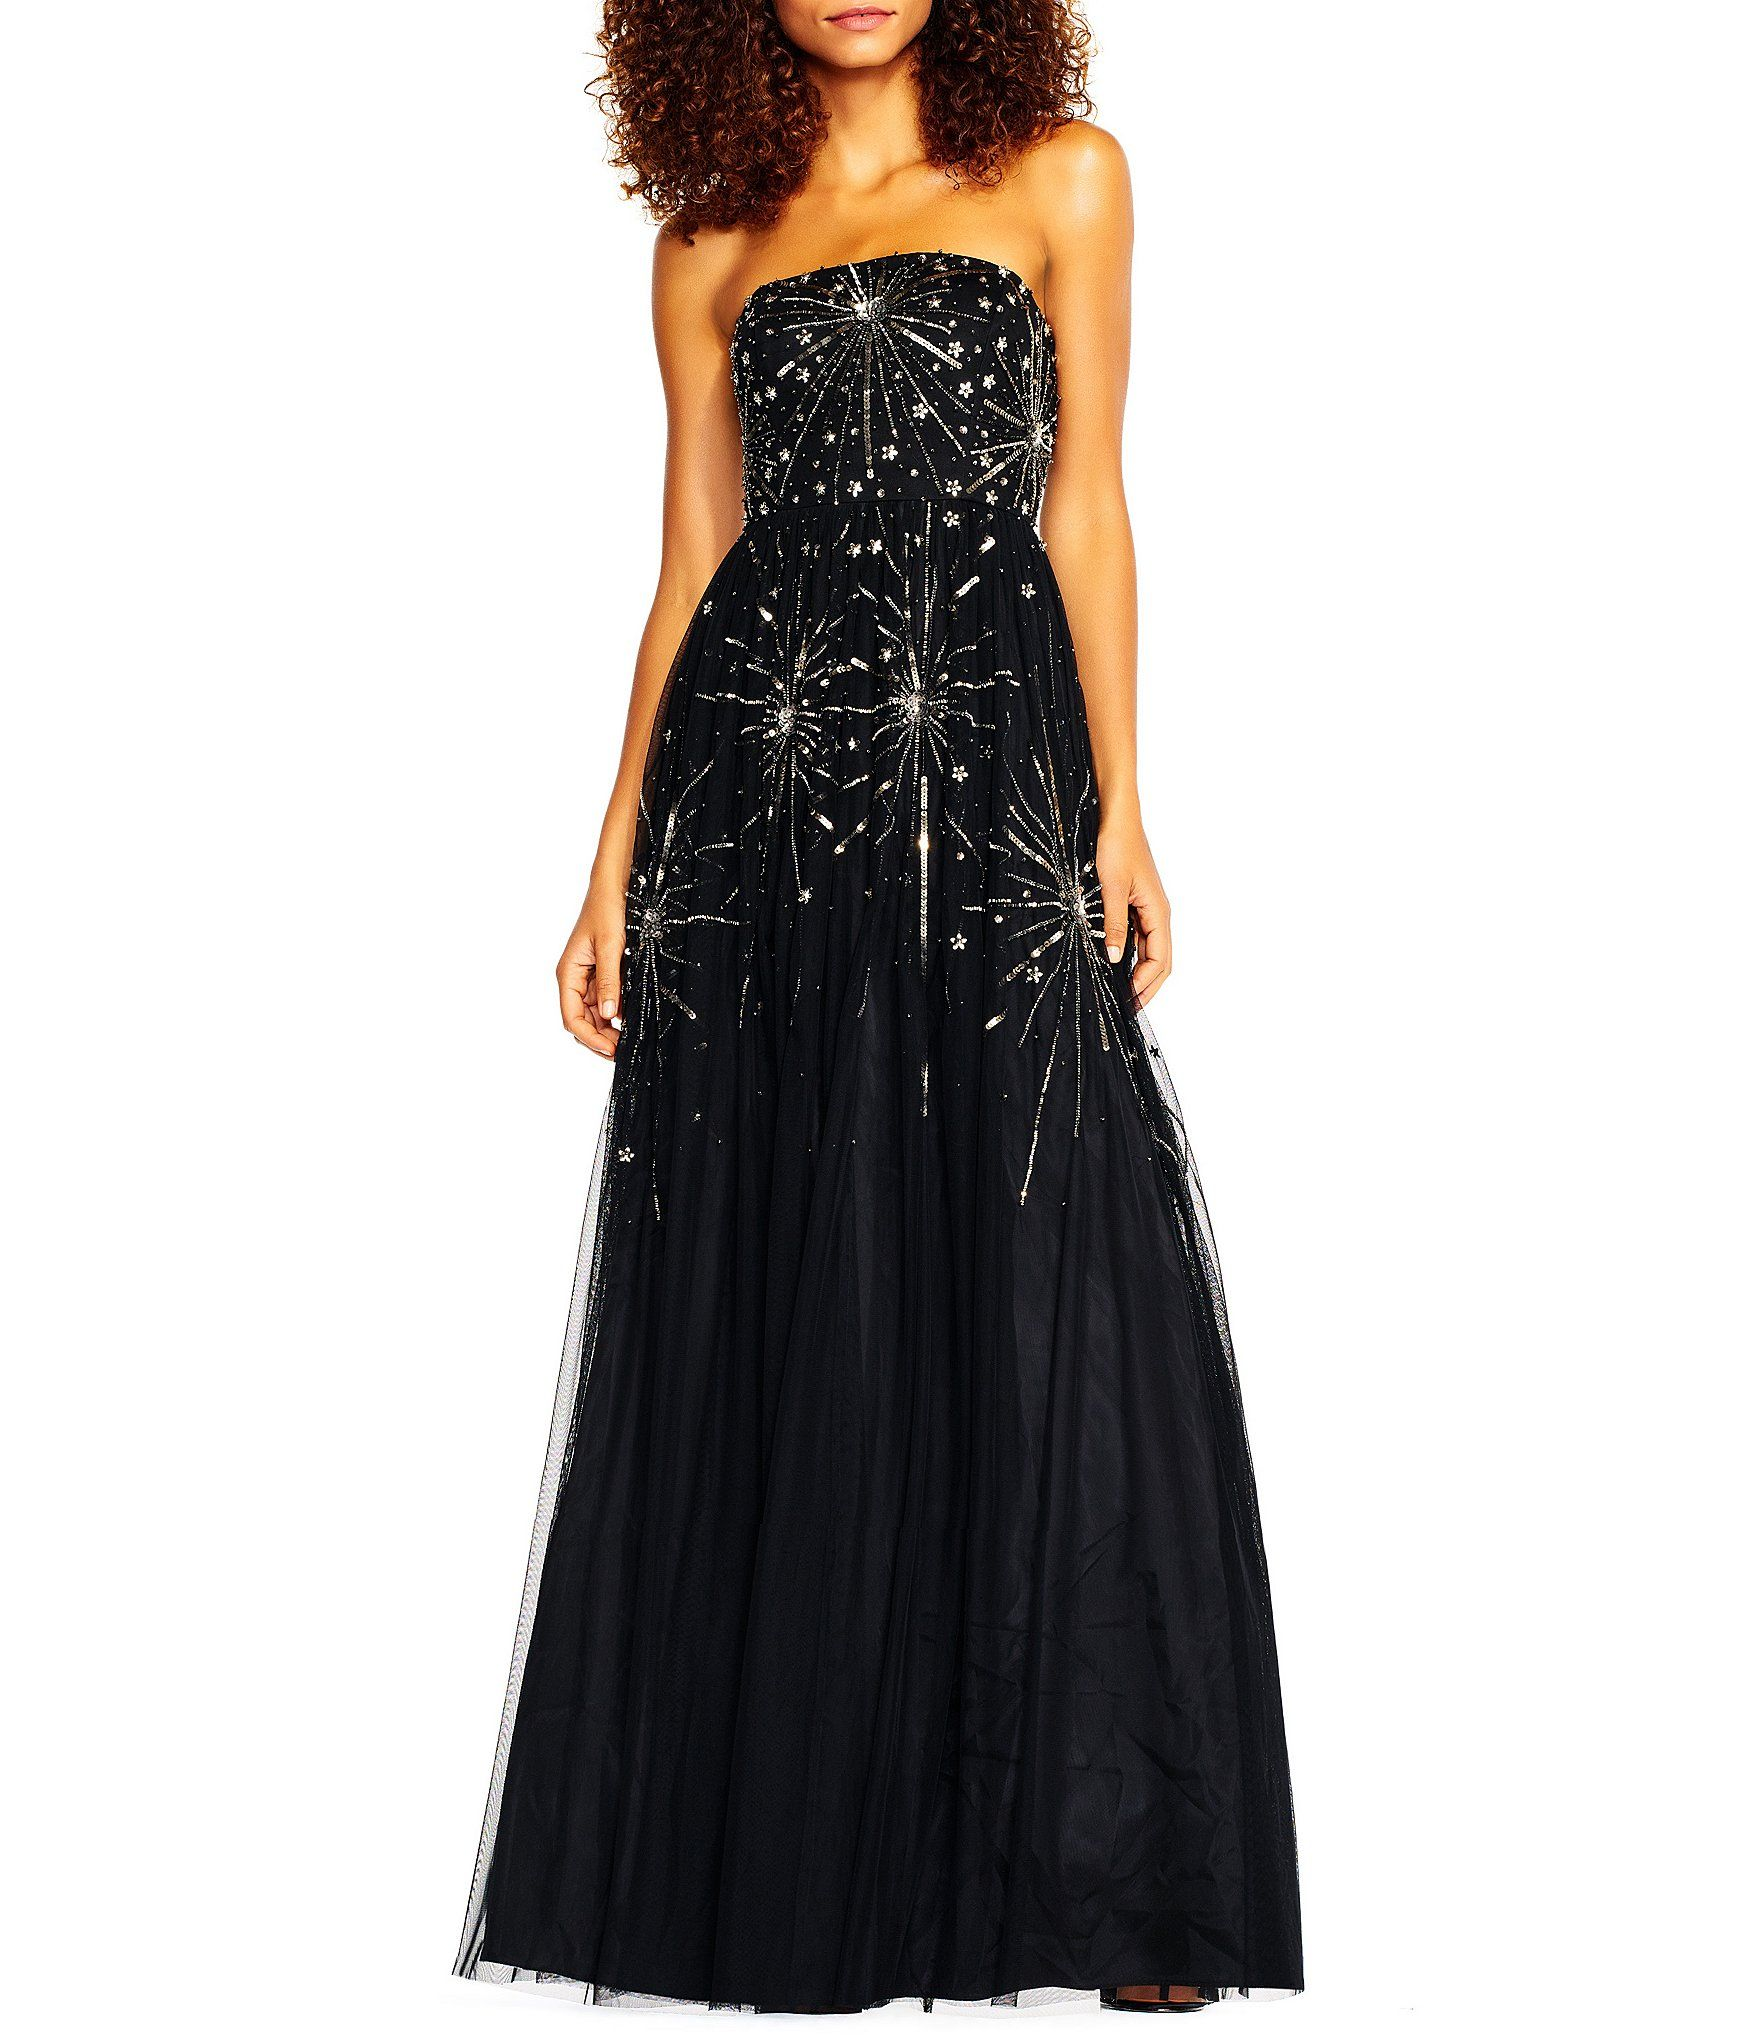 Shop for Adrianna Papell Strapless Beaded Ball Gown at Dillards.com ...